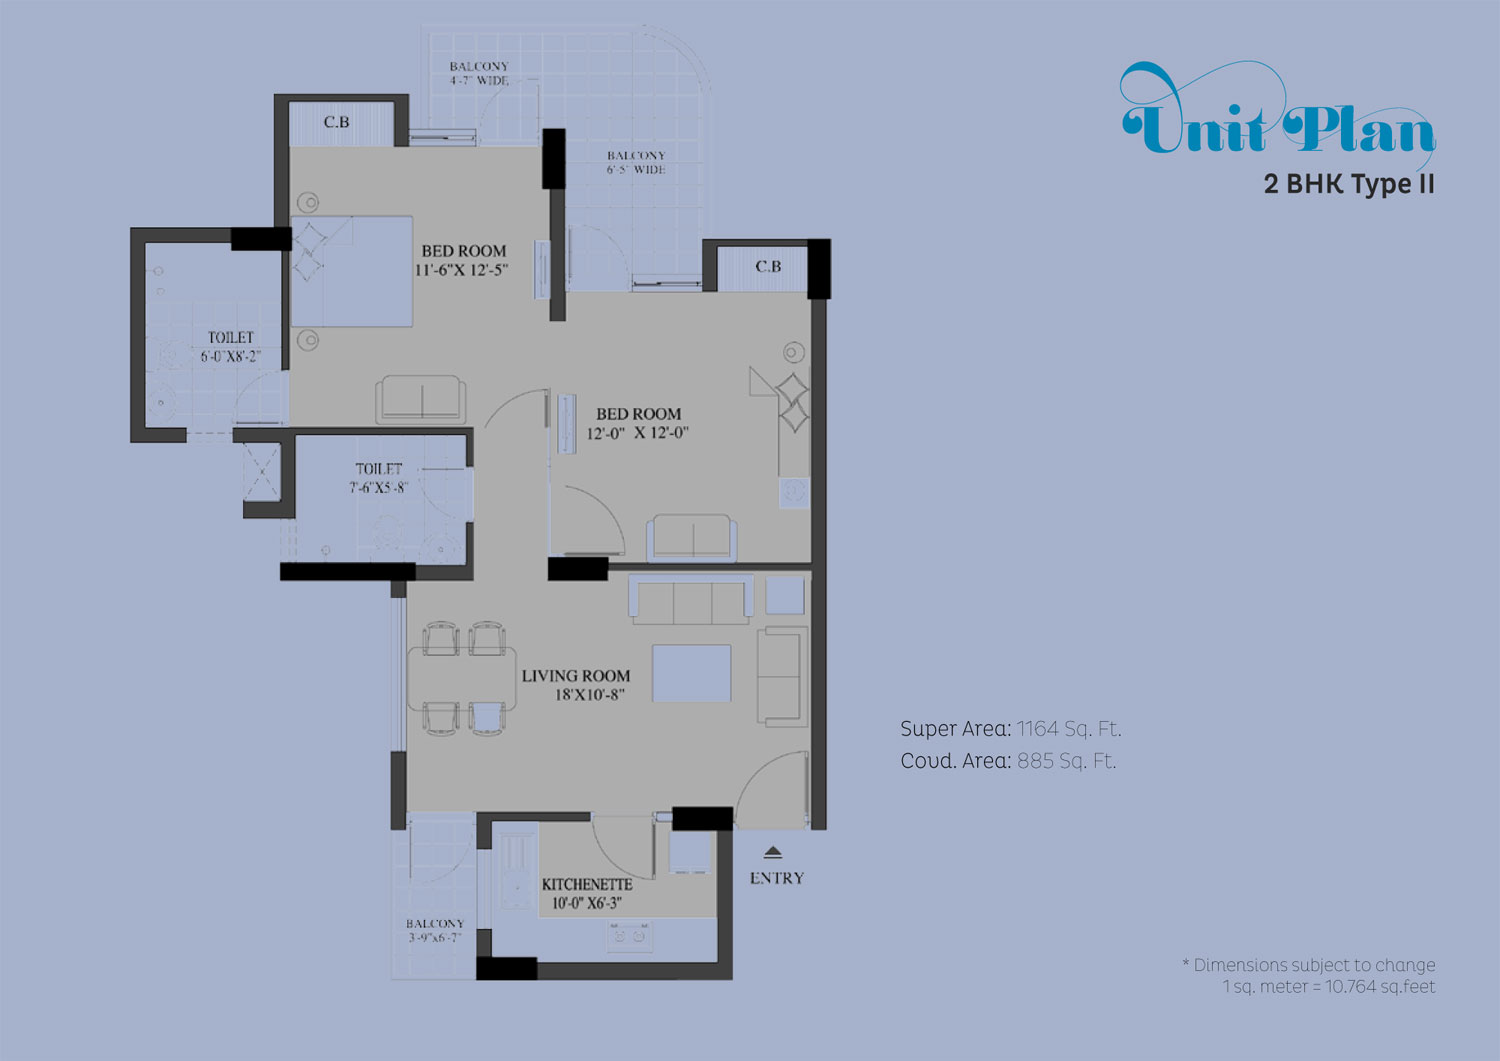 stellar mi citihomes 2bhk 1164 sqr ft floor plan